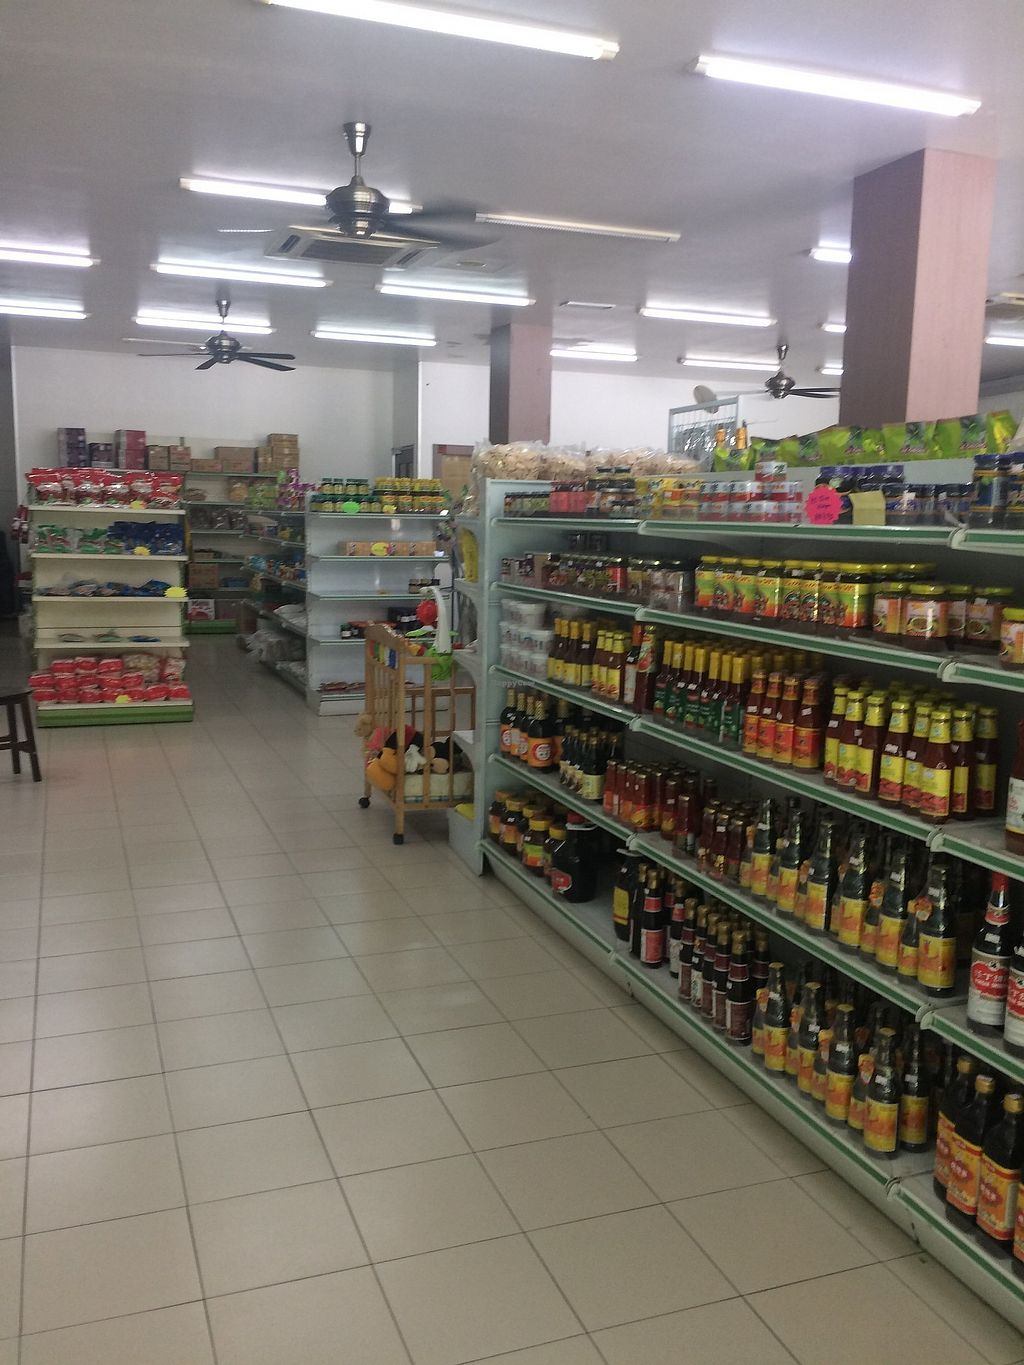 """Photo of G-Teik Vegetarian Supply  by <a href=""""/members/profile/LaurenceMontreuil"""">LaurenceMontreuil</a> <br/>alley <br/> March 10, 2018  - <a href='/contact/abuse/image/124/368729'>Report</a>"""